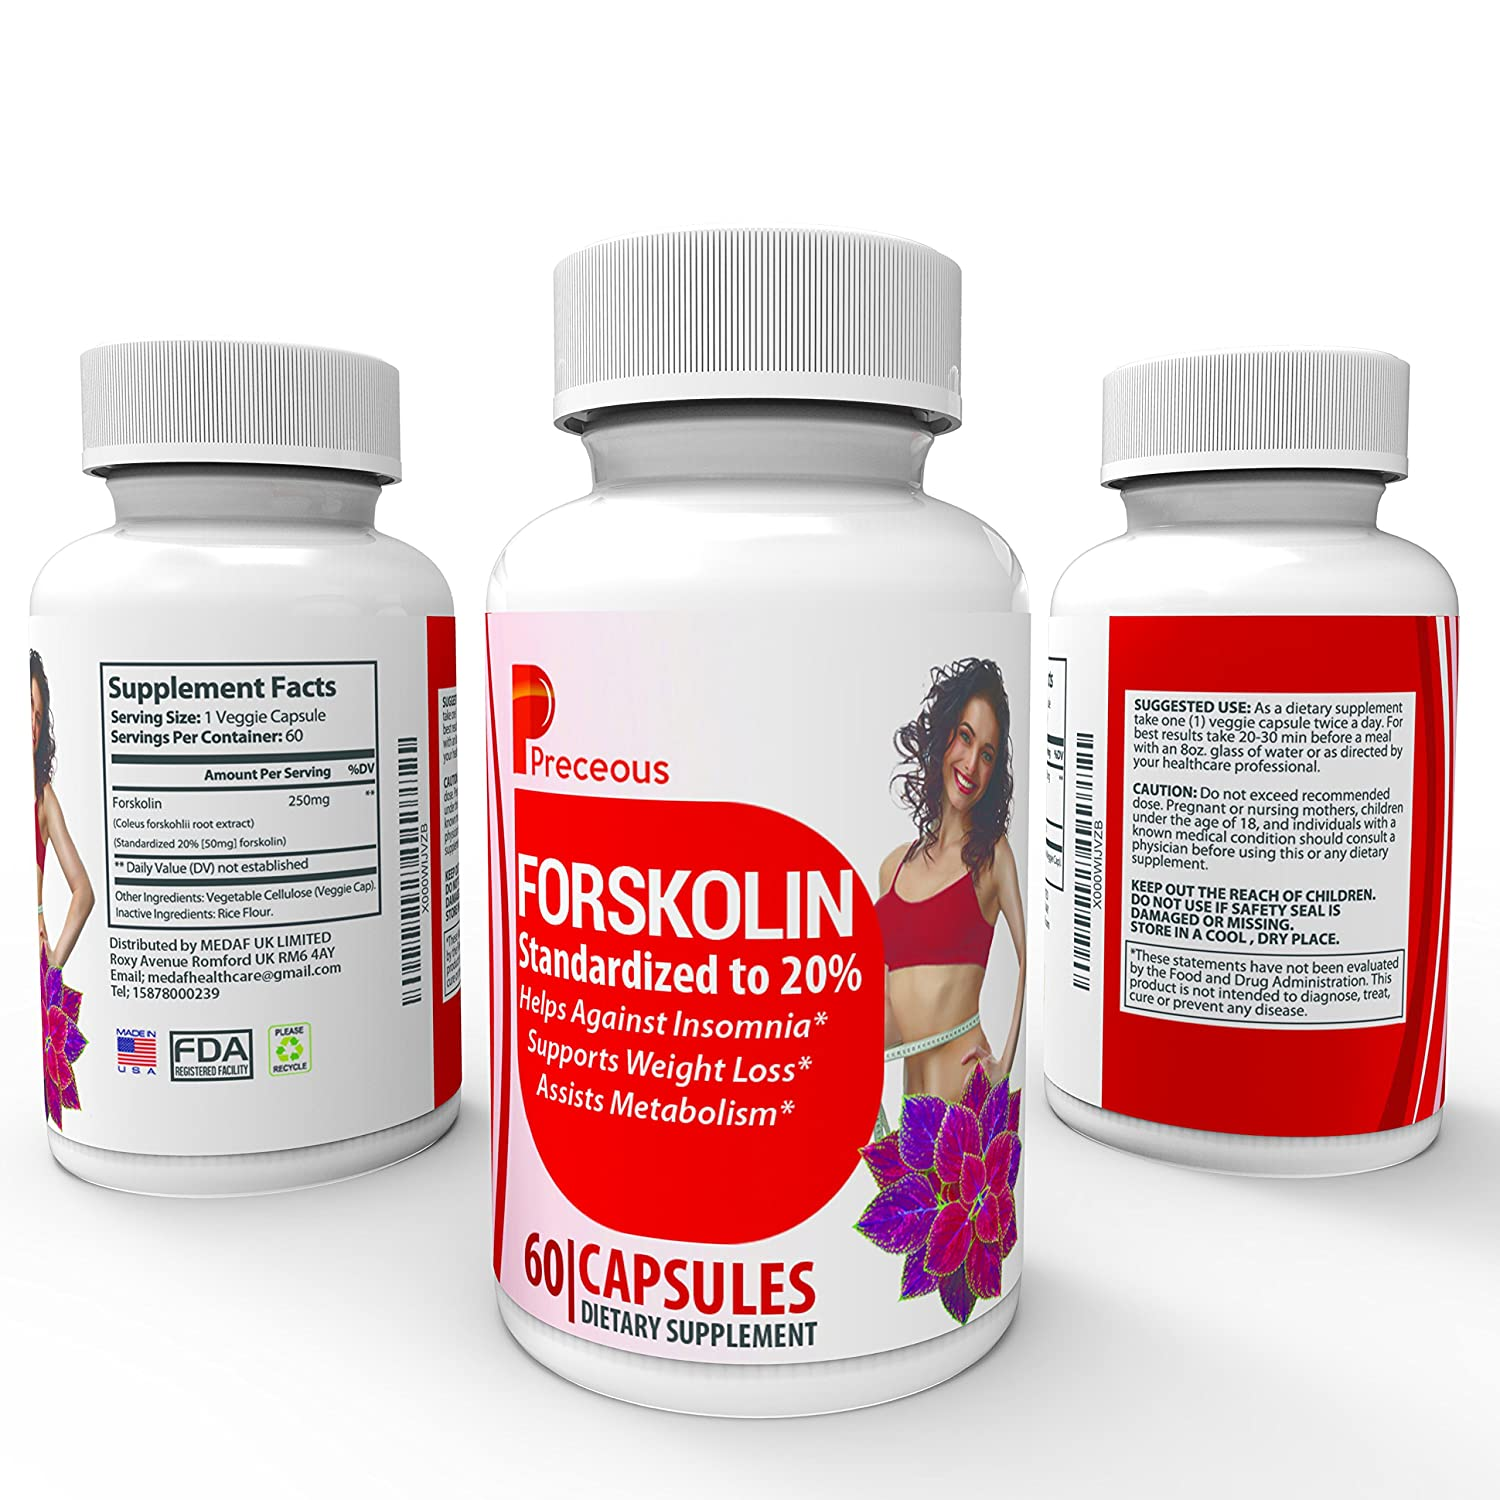 Recommended daily dose of forskolin